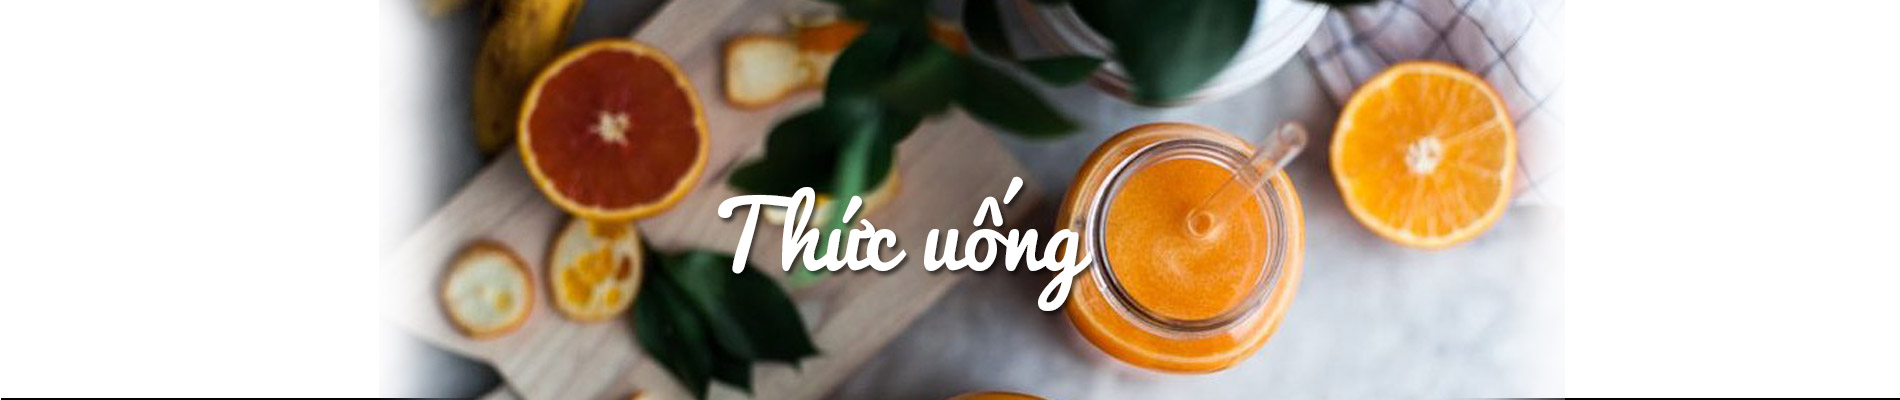 banner-thức-uống